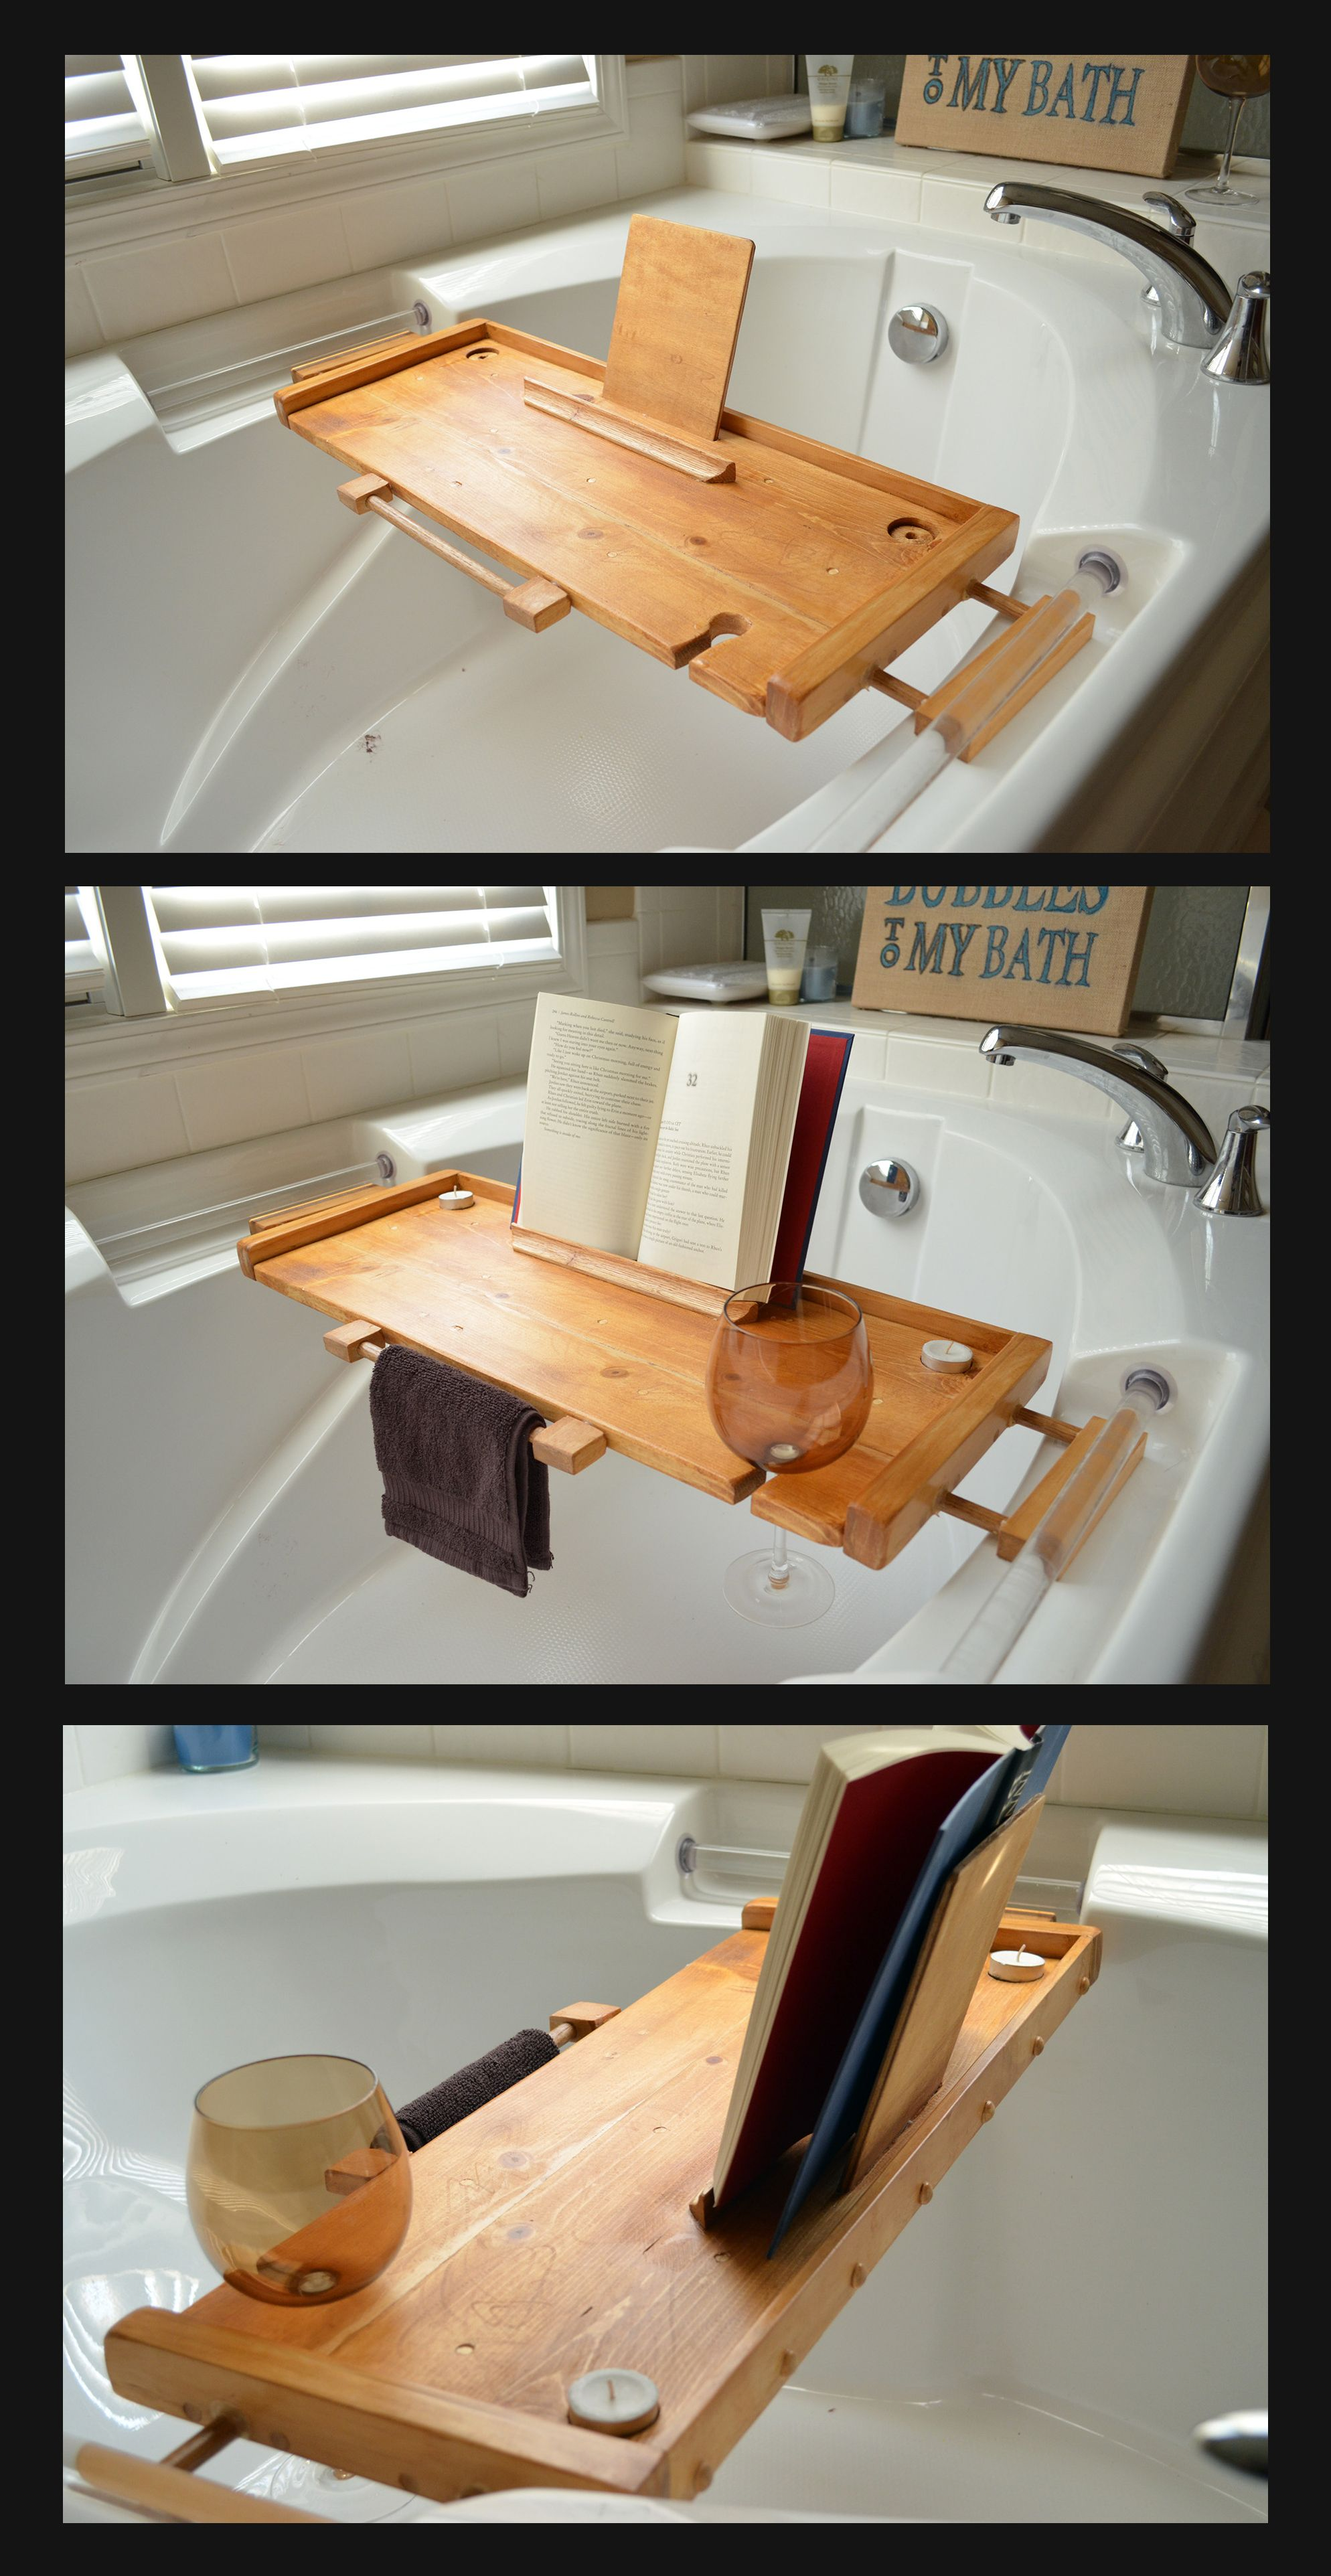 Bathtub Caddy I Made for My Wife. (It has a hand towel holder ...